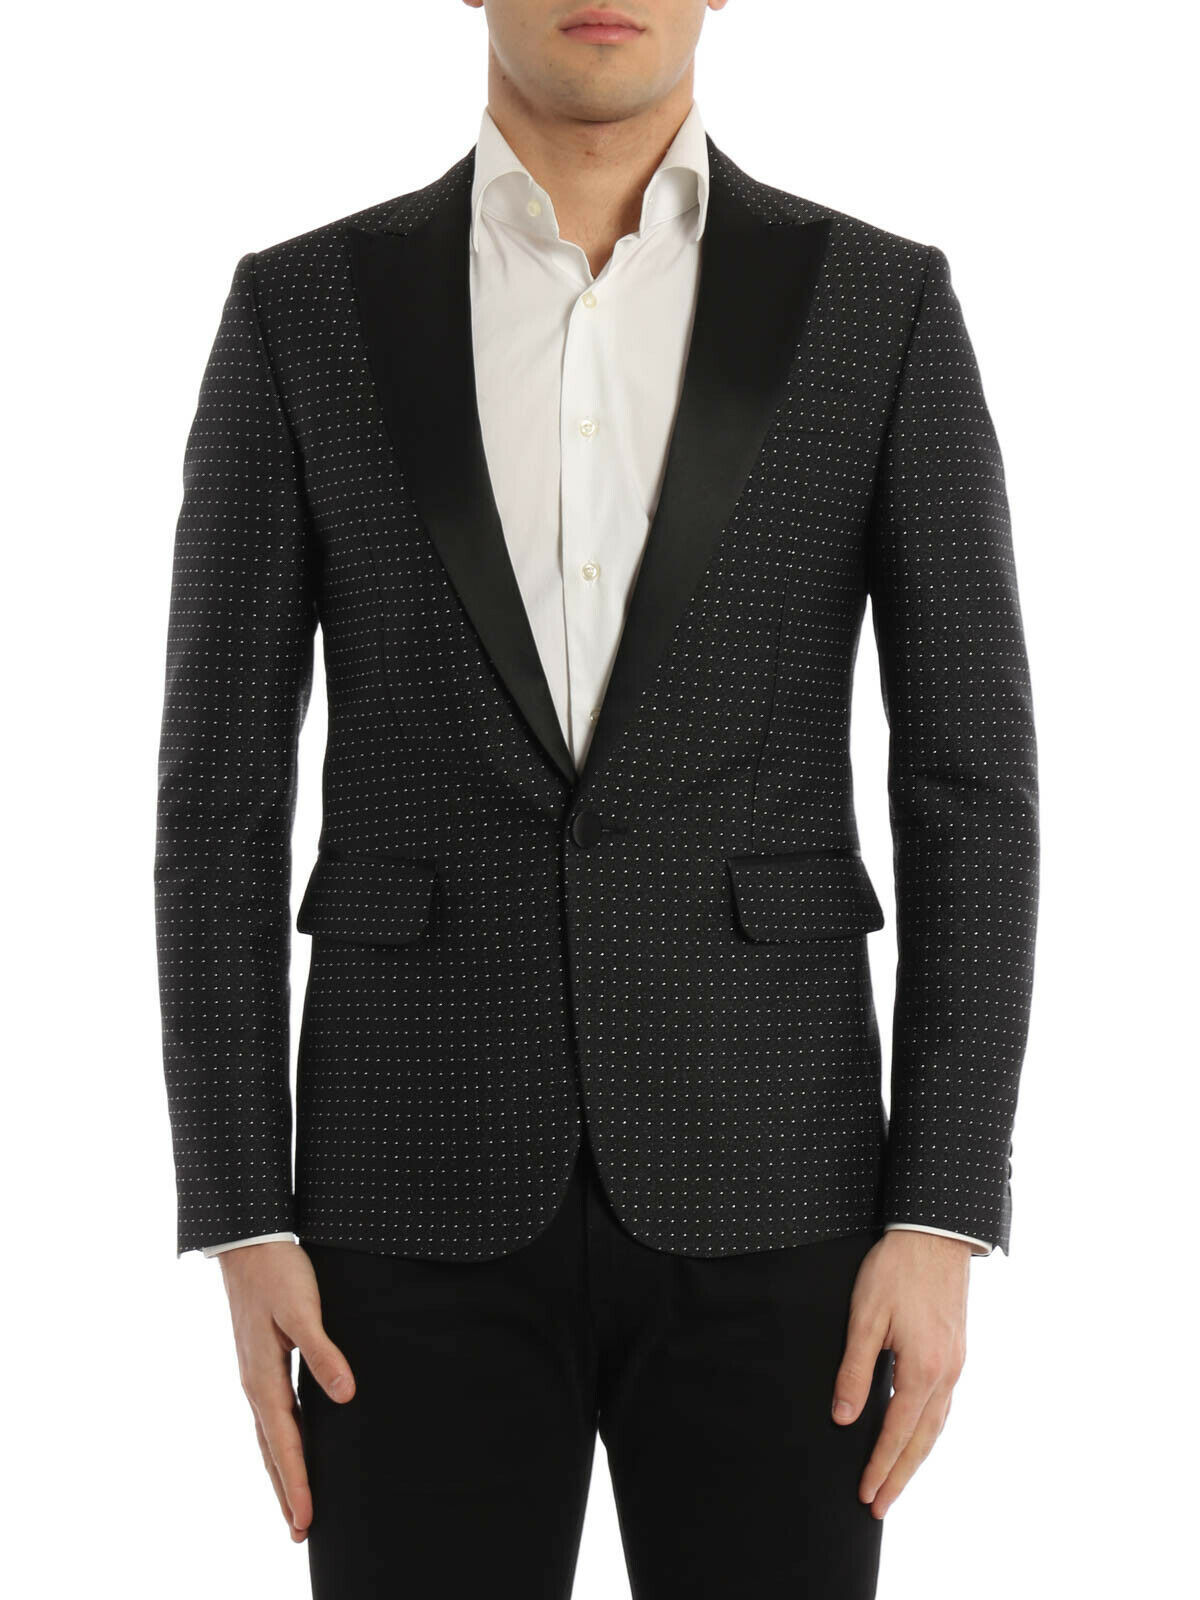 Primary image for $1980 Dsquared2 Micro Patterned Dot Tuxedo Blazer Black  Size  50 IT